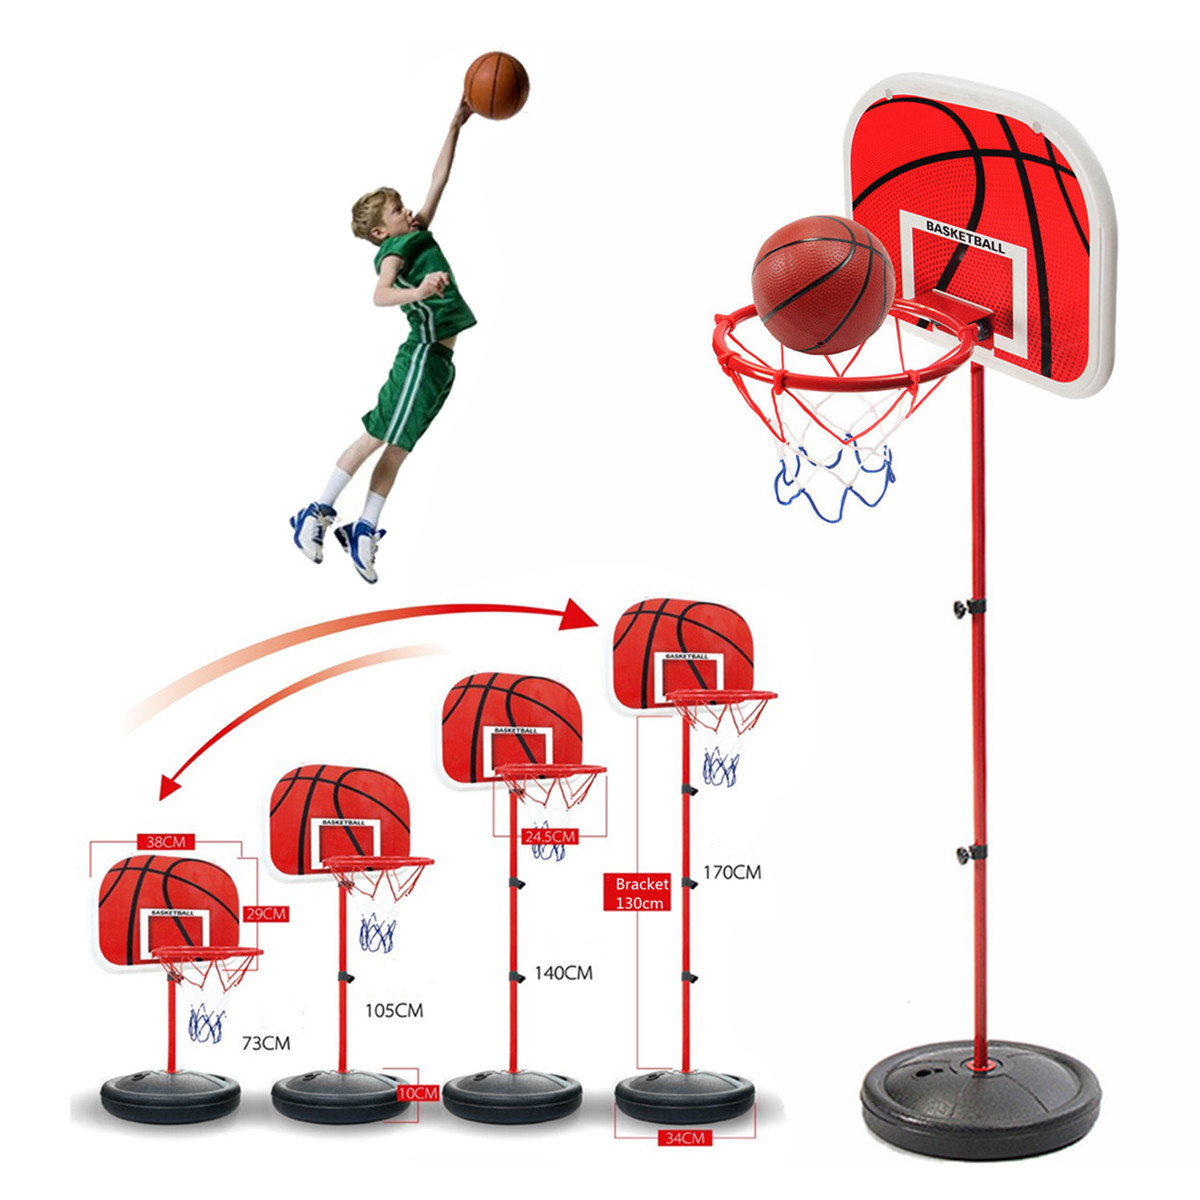 Adjustable Height Kids Children Toy Mini Basketball Stand Back Board And Hoop With Ball & Pump Indoor Outdoor Sports hot sale mini basketball hoop with ball 18 inch x12 inch shatterproof backboard